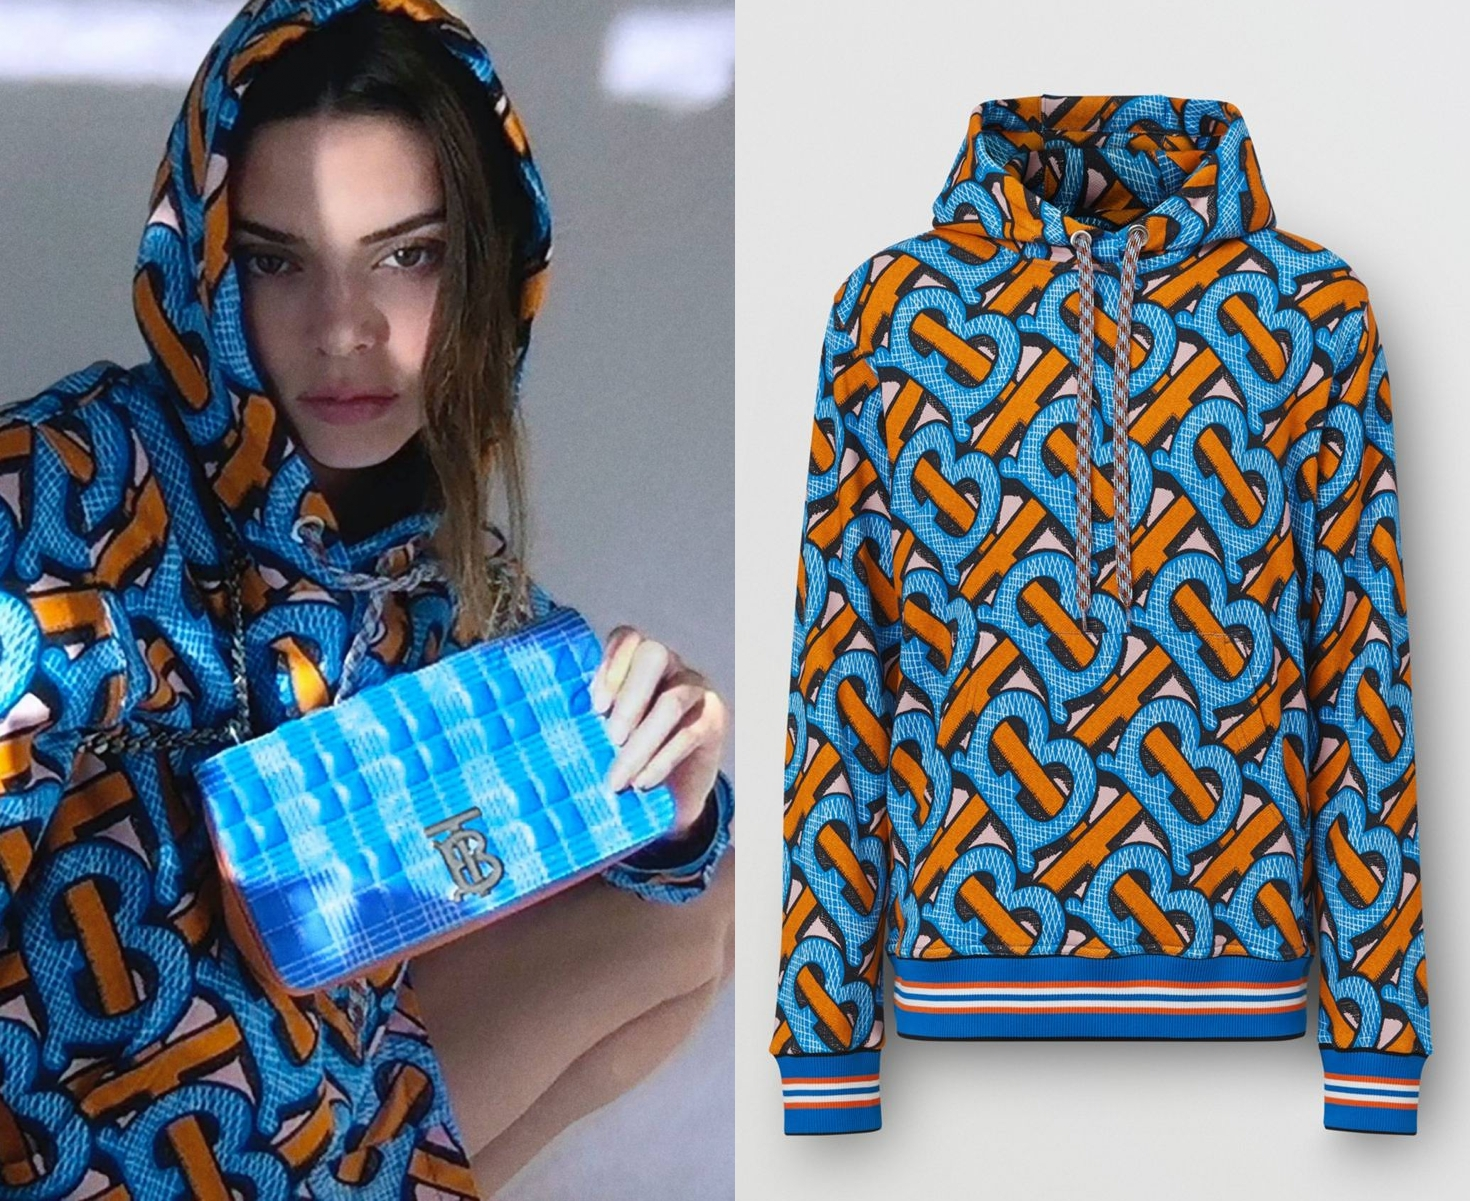 Kendall Jenner rocking a Oversized blue printed Burberry hoodie while on Instagram